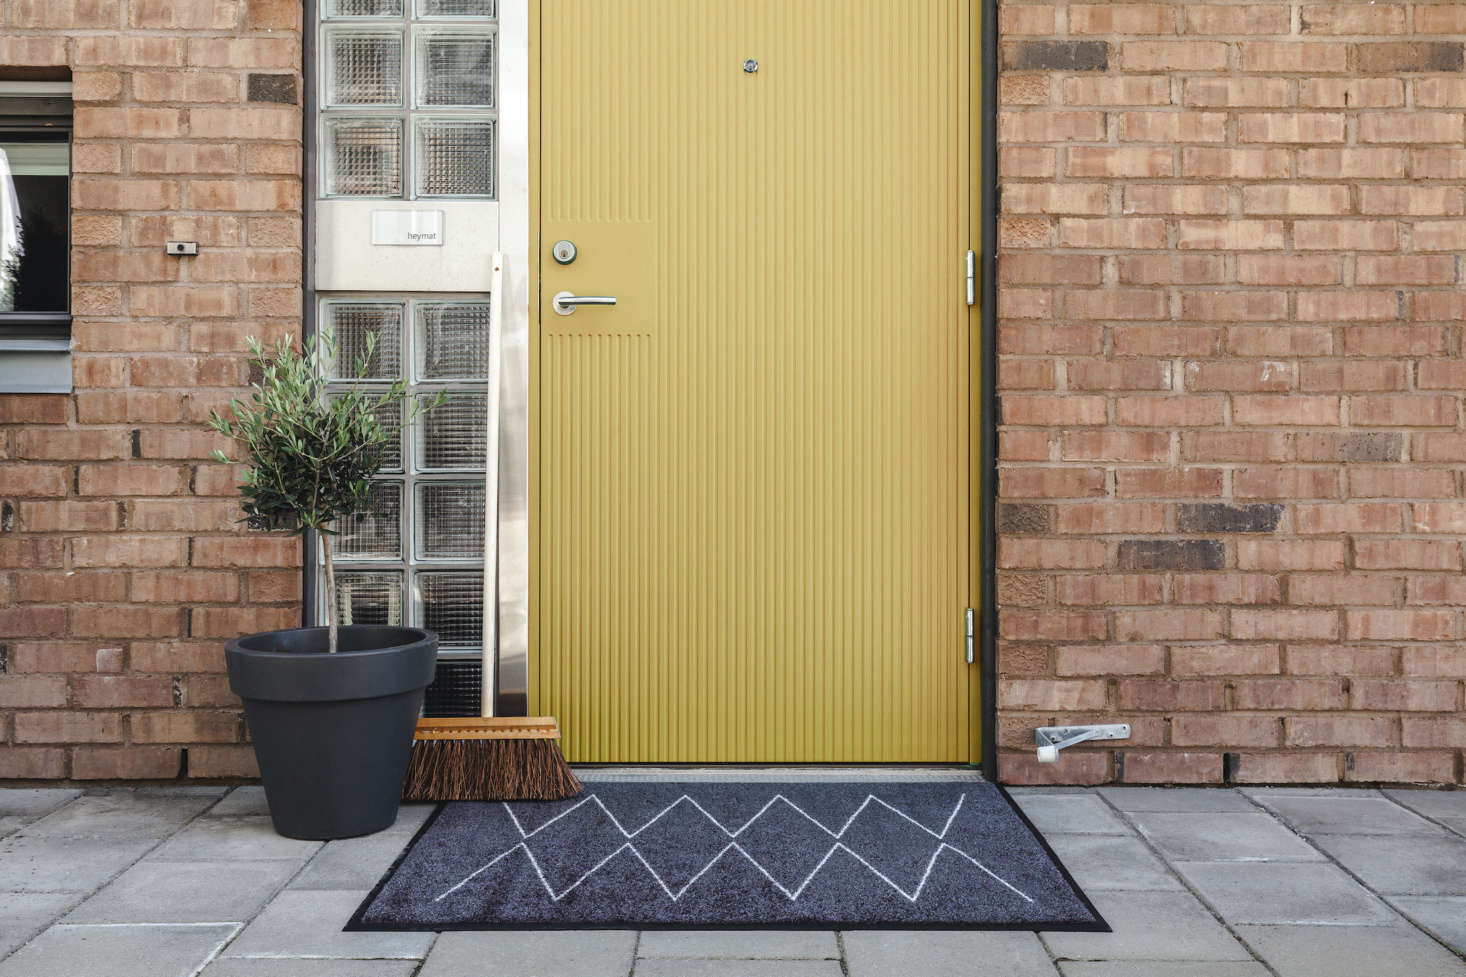 Heymat is an off-shoot of a three-generation, family-owned industrial cleaning business—after years of leasing mats to commercial customers in Norway, the company decided to start making their own and enlisted designers to come up with the patterns. The Lyn, shown here, is available from Austin-based Nannie Inez in two sizes starting at $9.